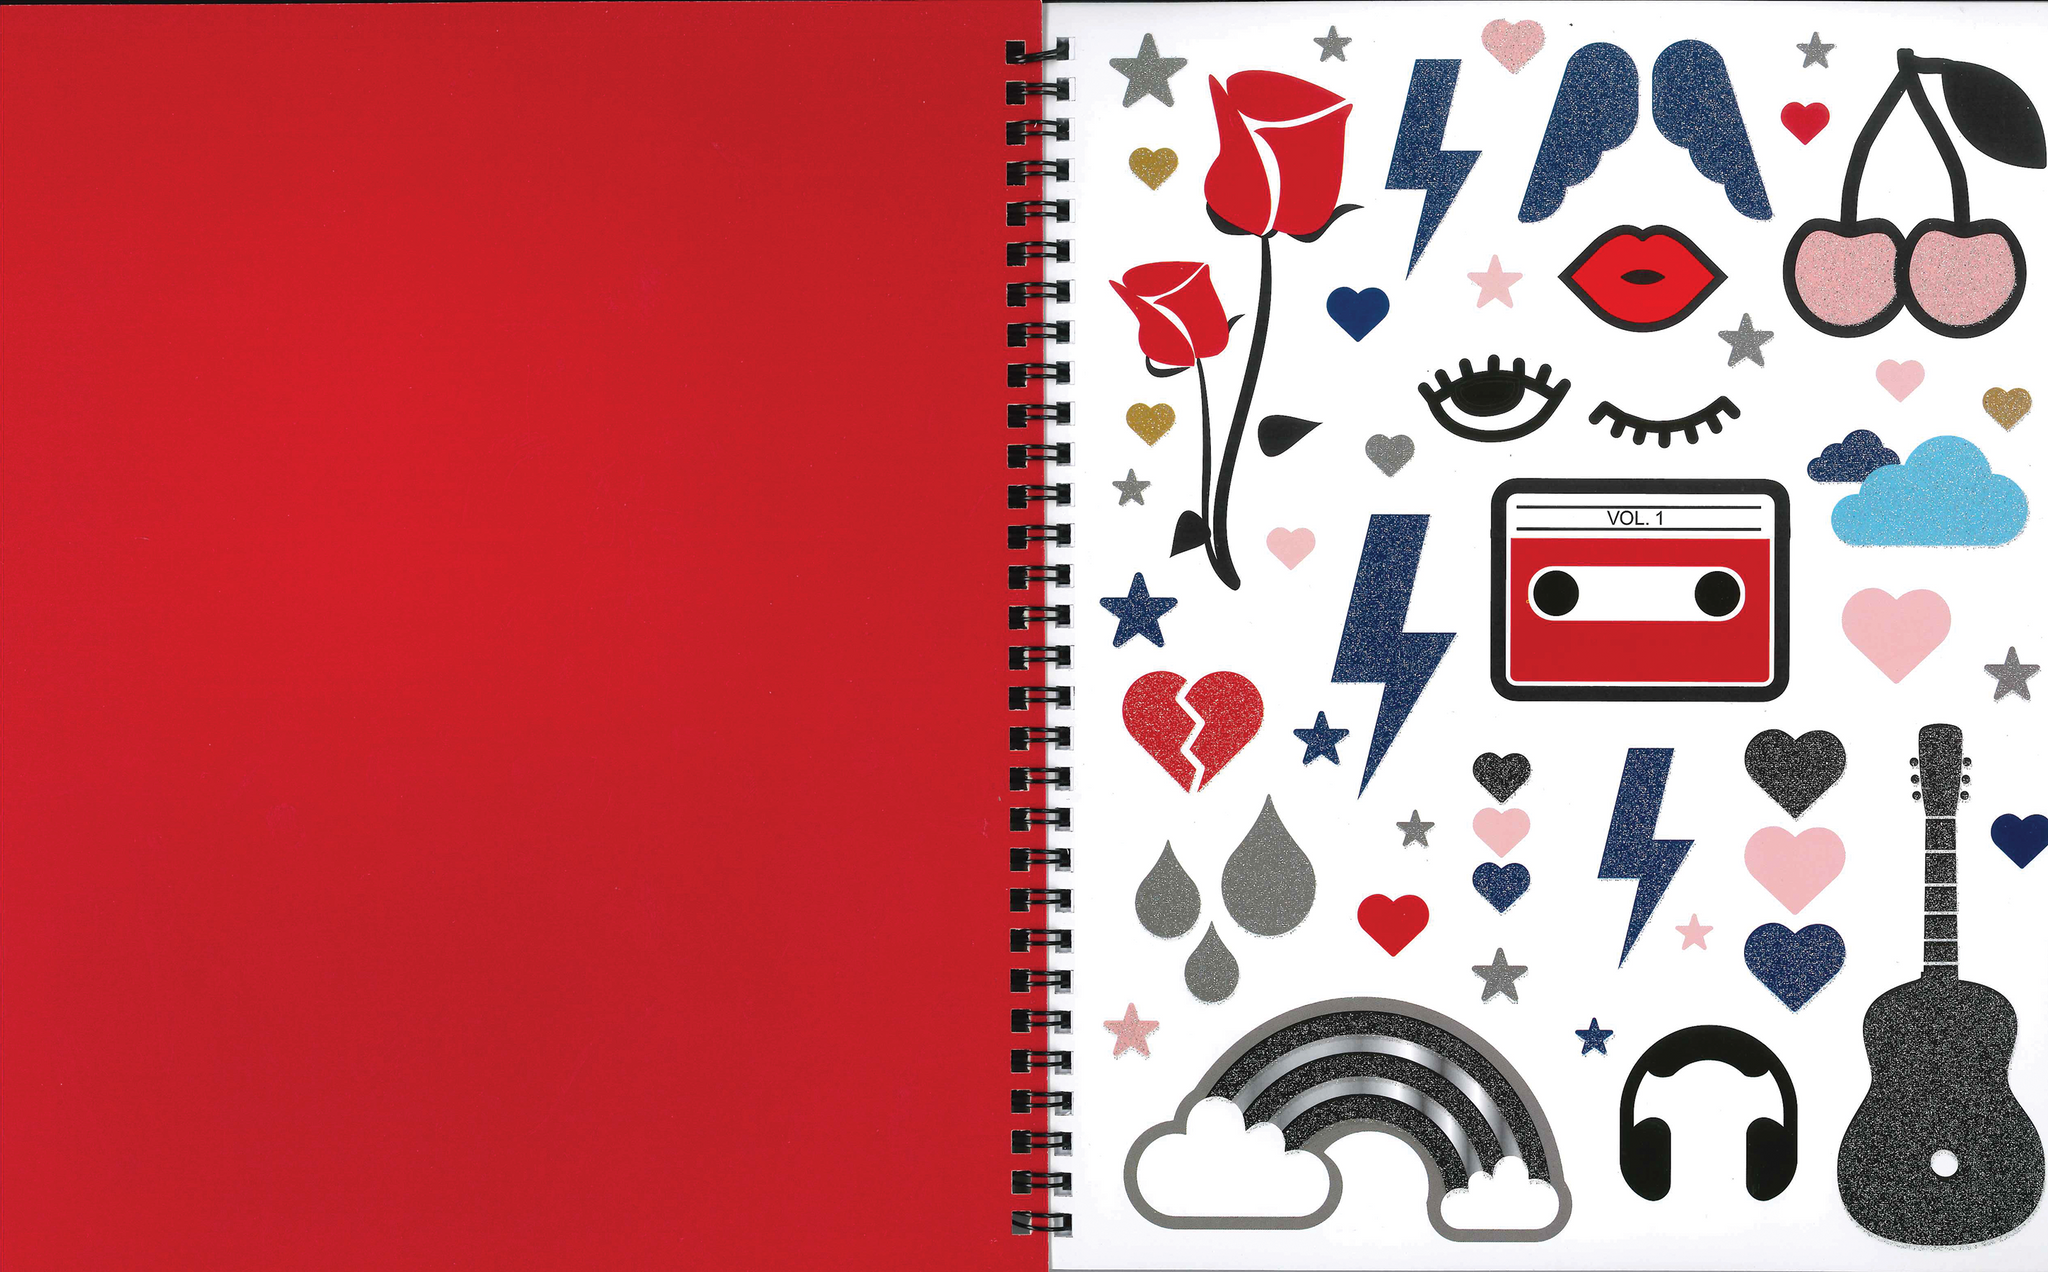 Lauren & Johnny 2-Pack Customizable Notebooks